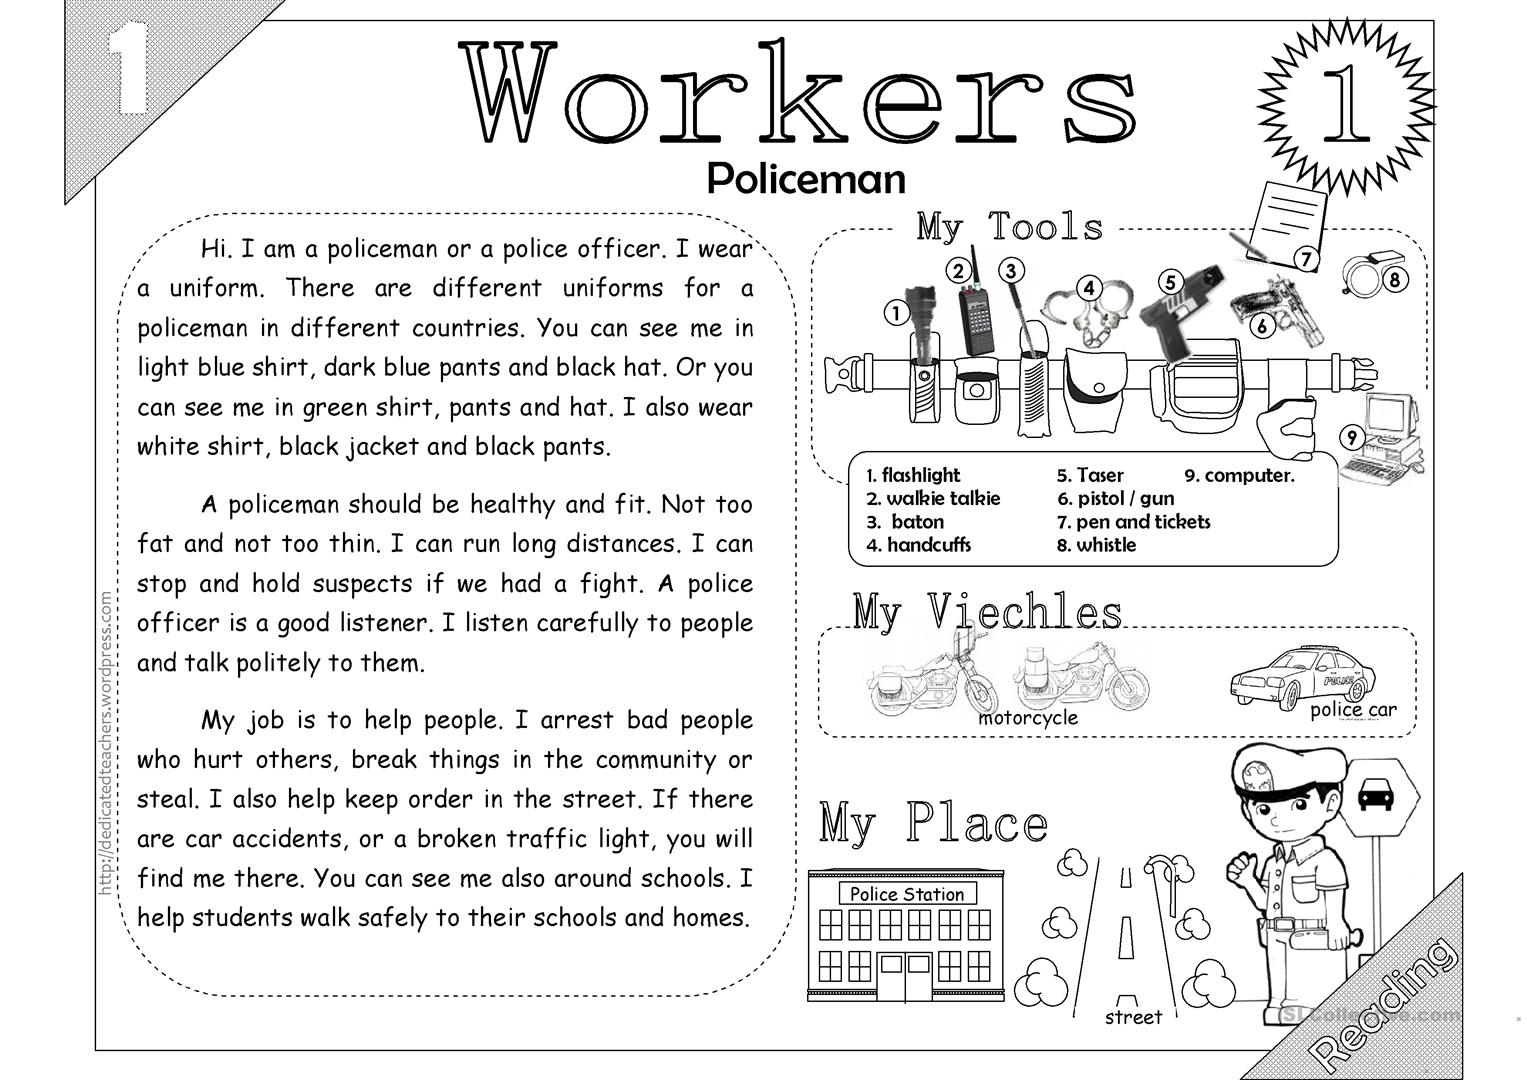 Workers 01 Policeman 2 Pages